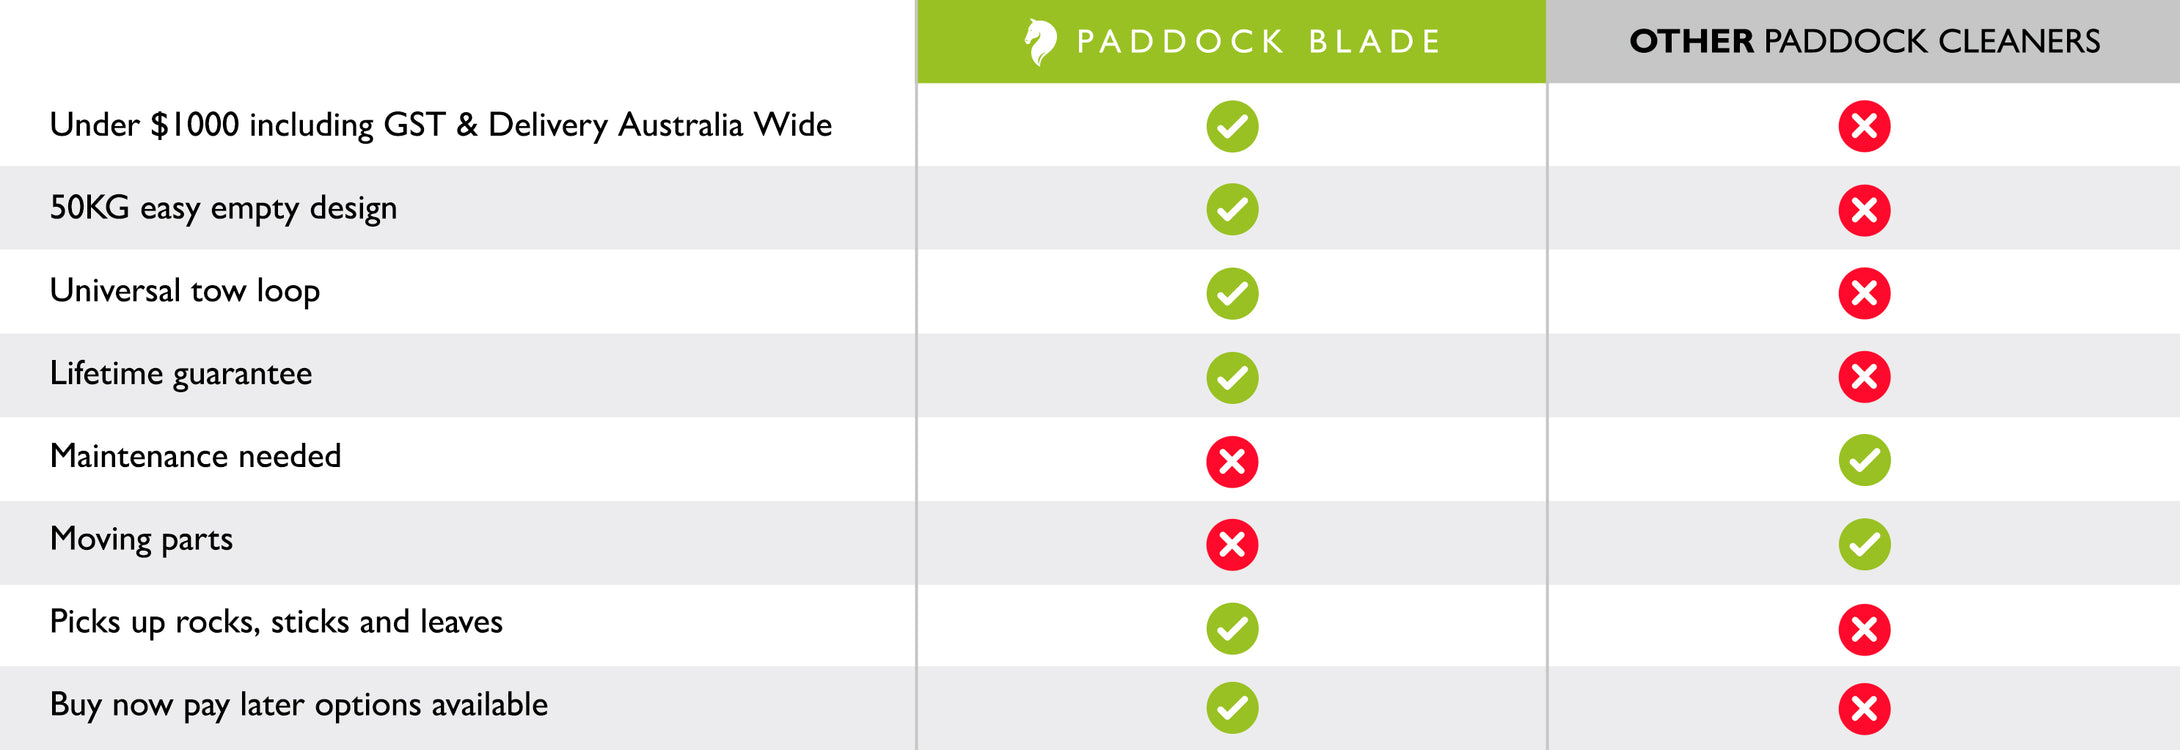 paddock blade comparison table